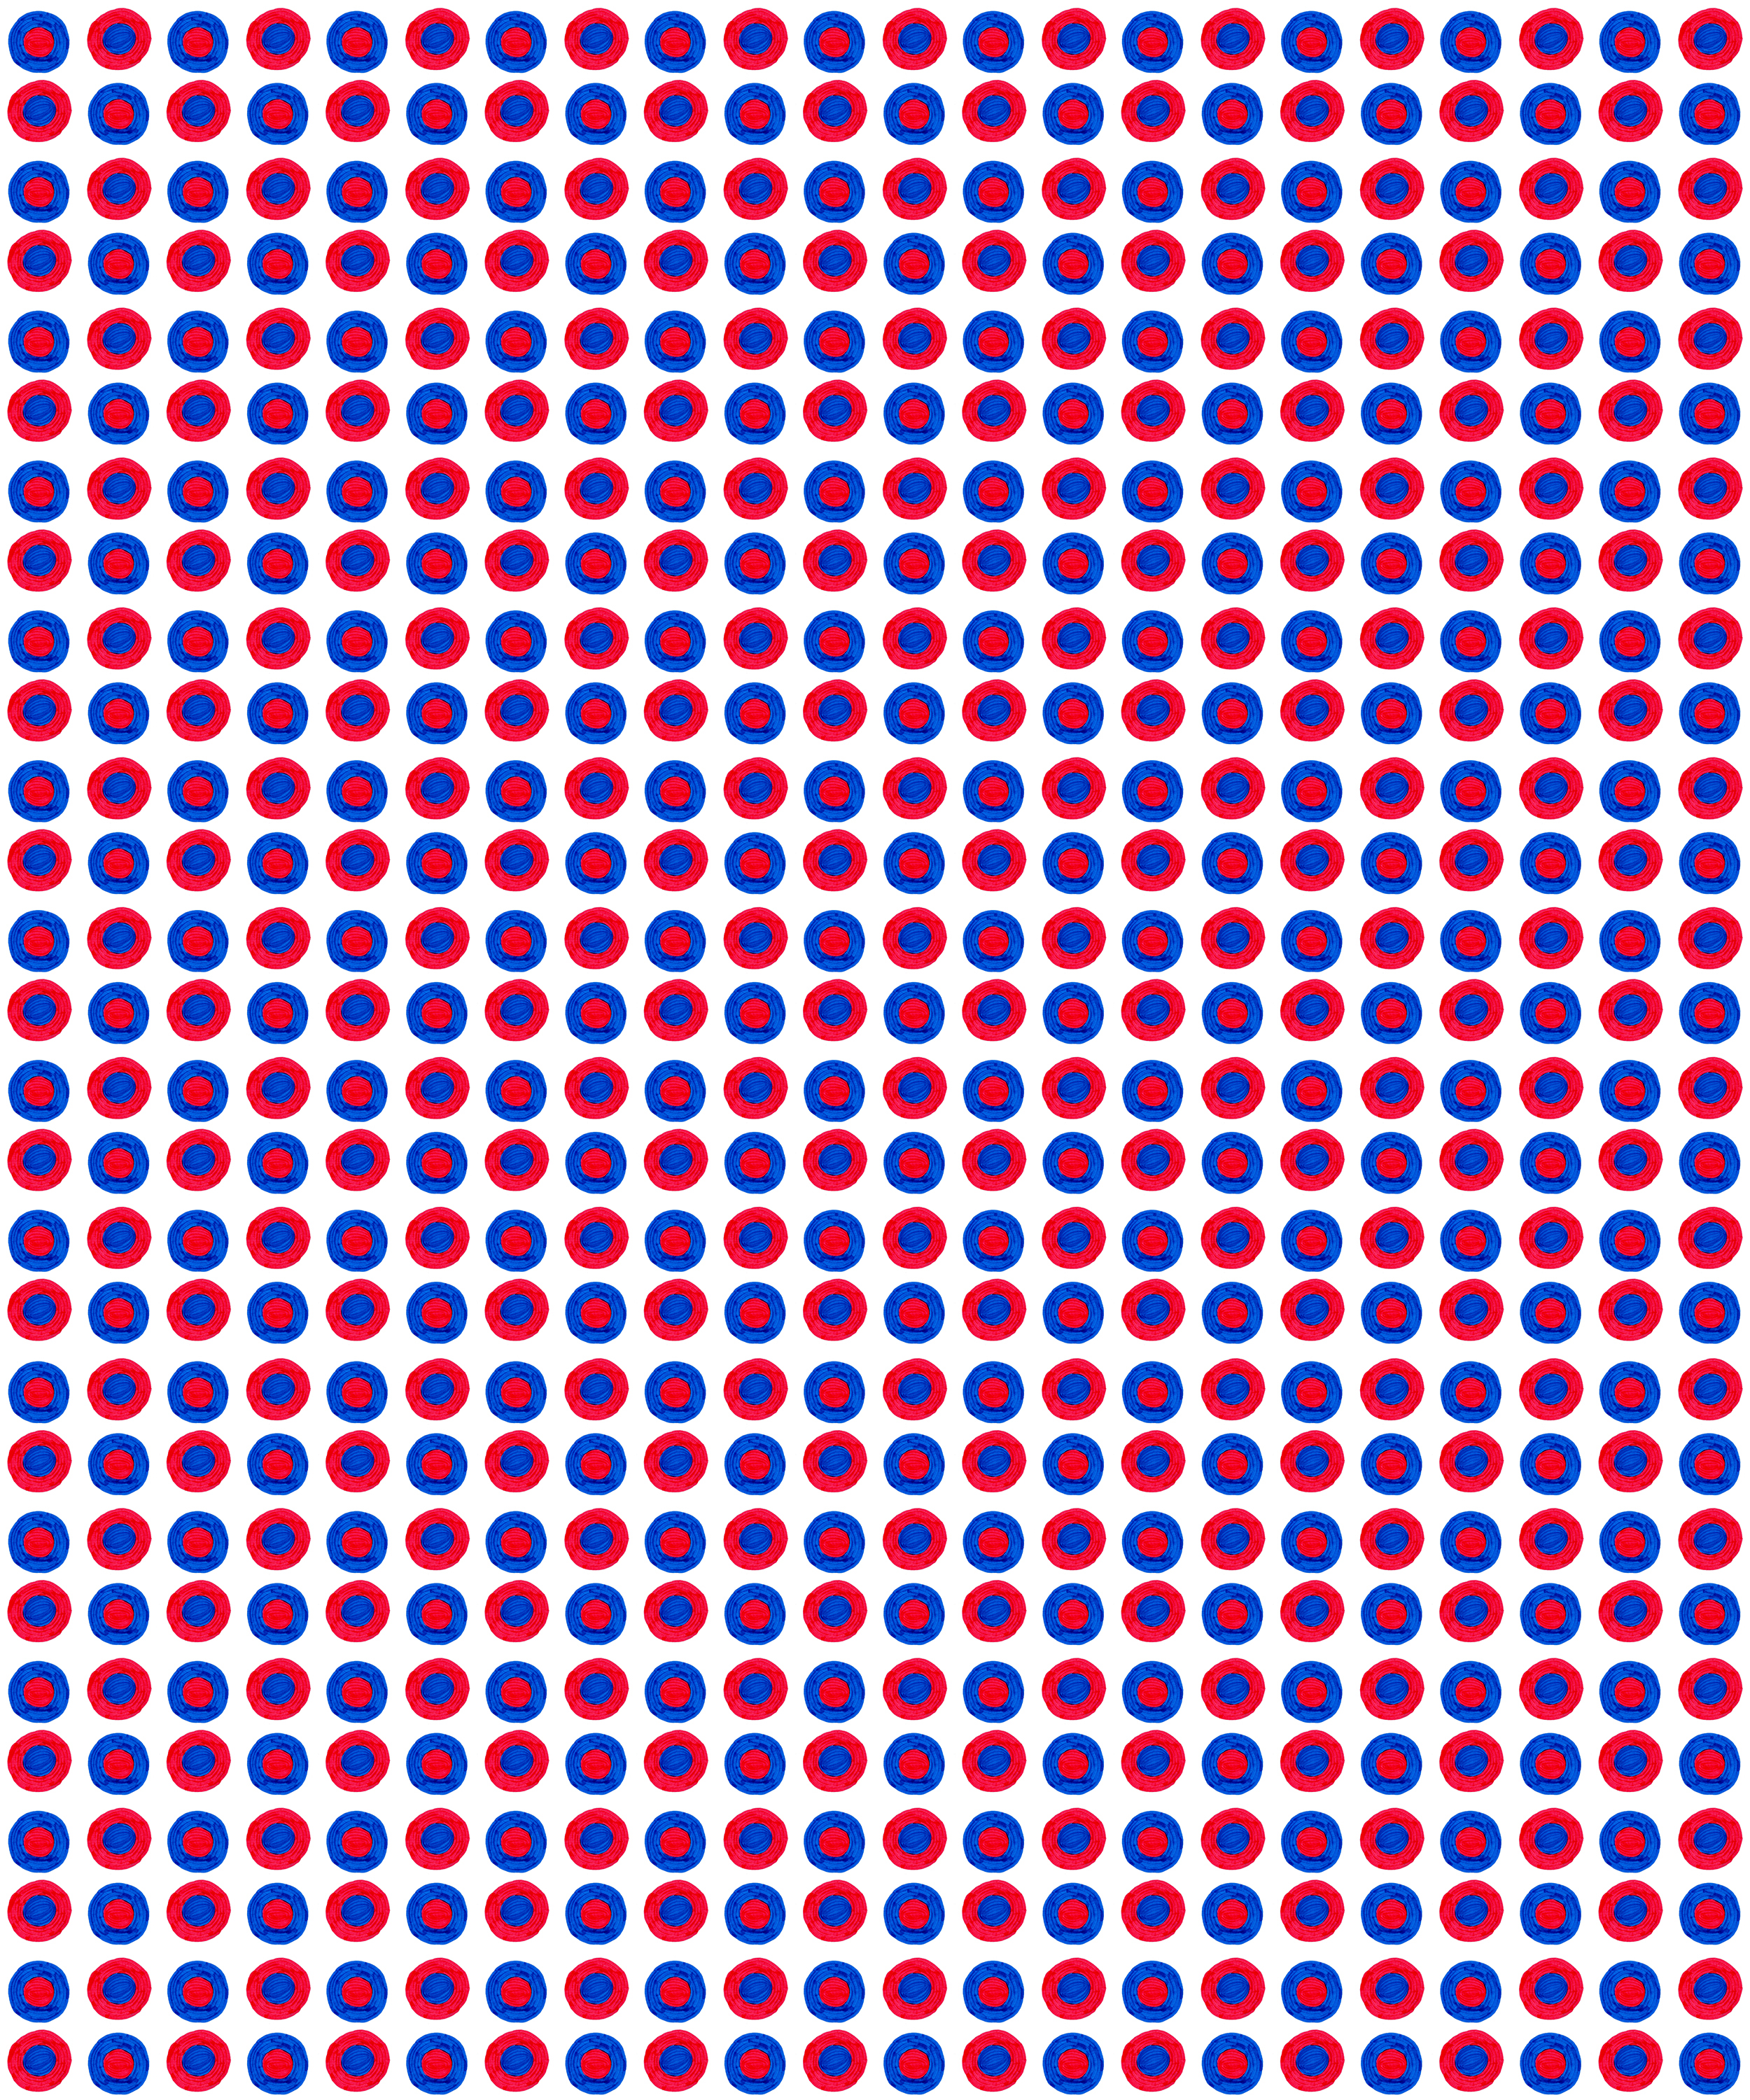 Small Red_Blue Dots.jpg